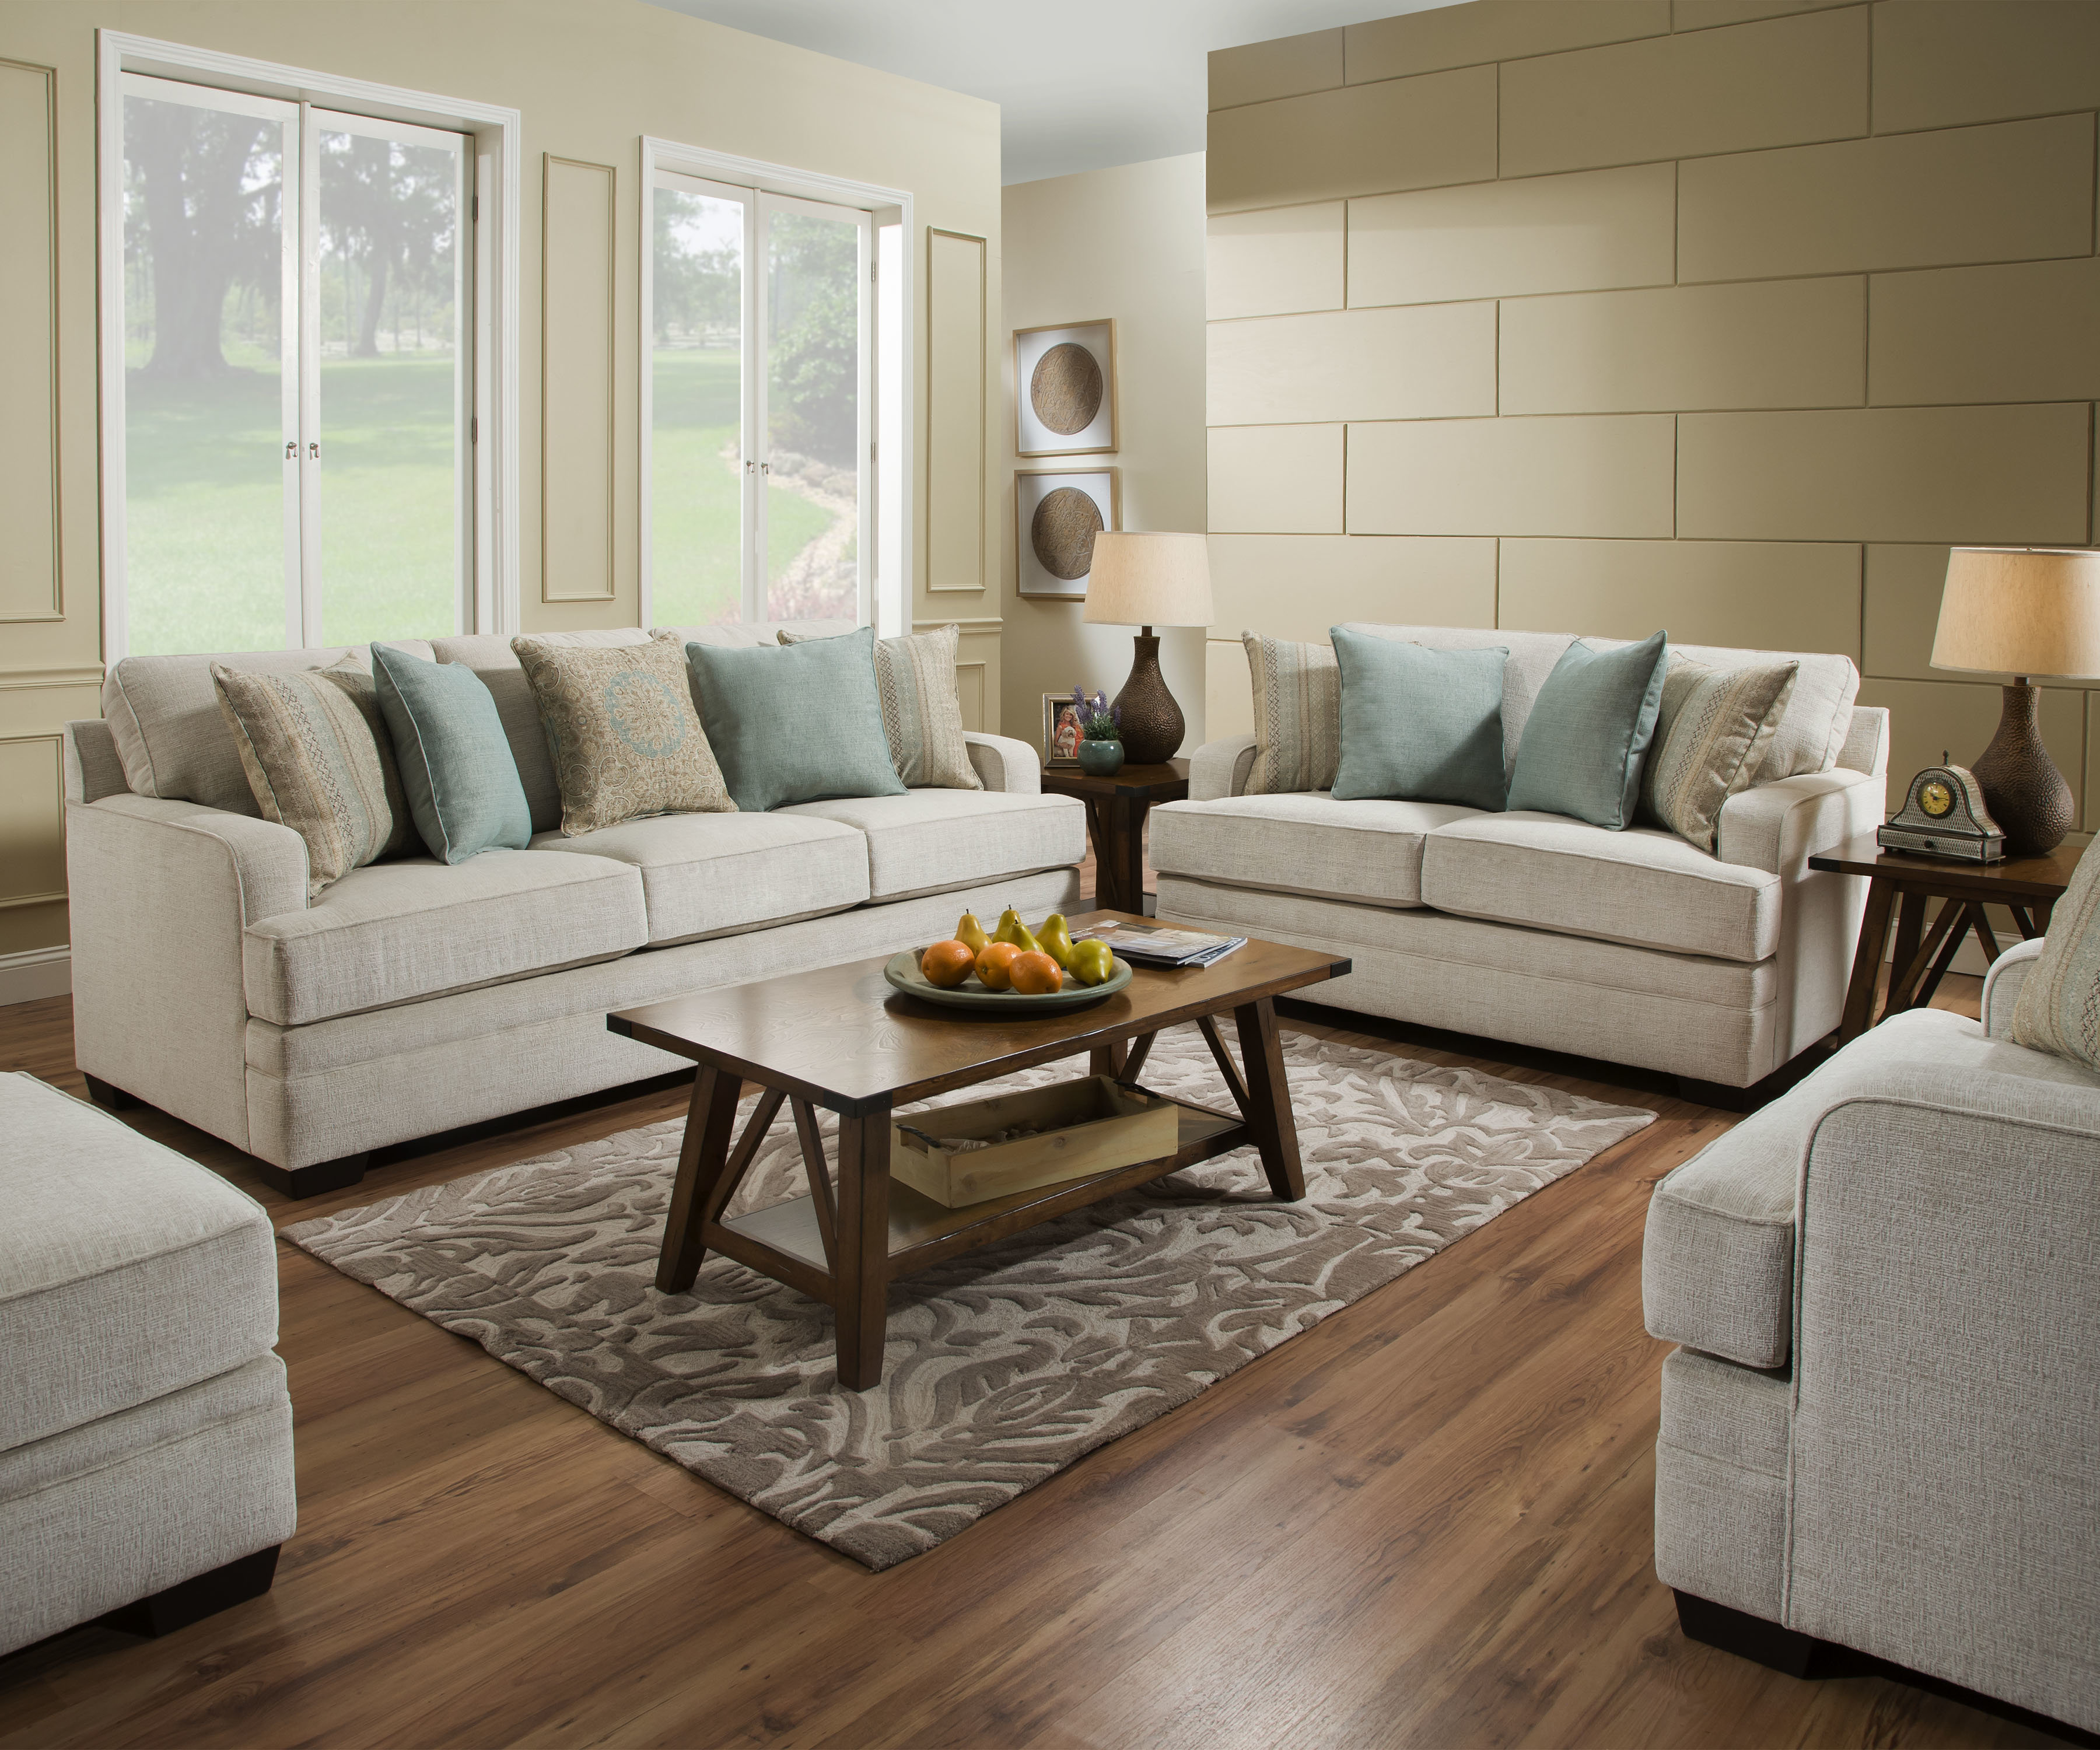 Three Posts Hattiesburg Configurable Living Room Set Simmons inside Simmons Living Room Set